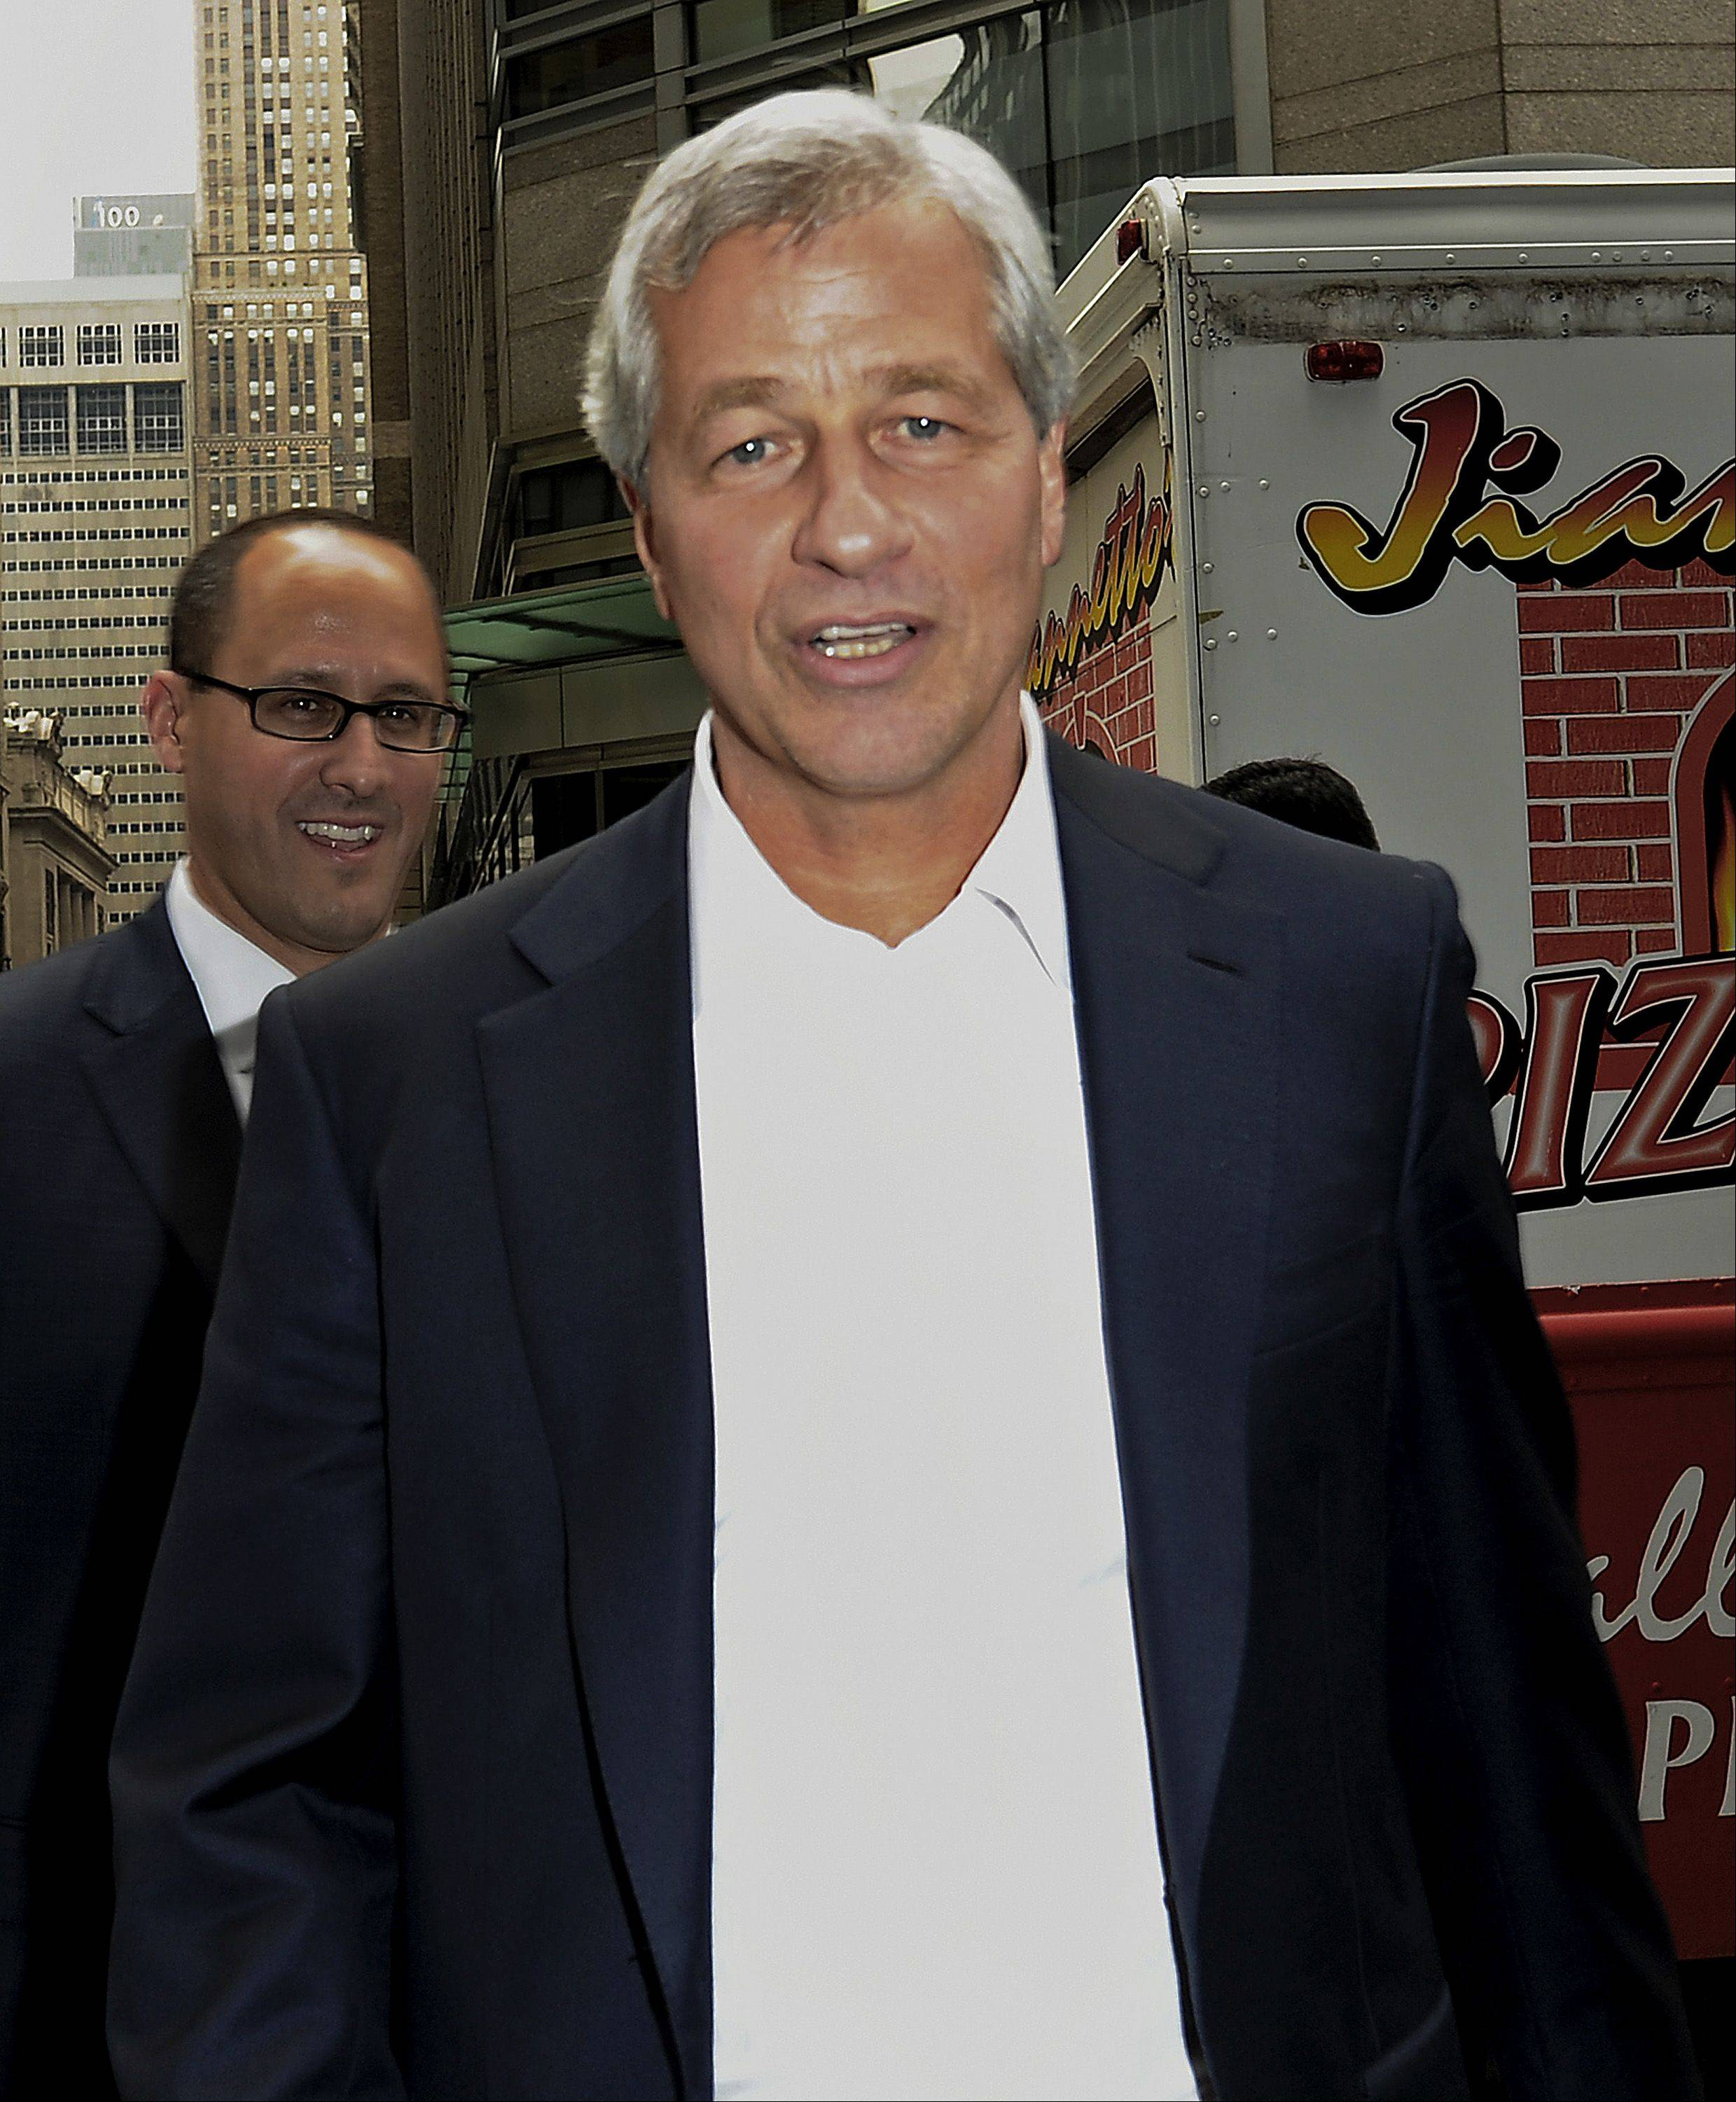 Jamie Dimon, chief executive officer of JPMorgan Chase & Co., walks outside company headquarters in New York, U.S., on Friday.